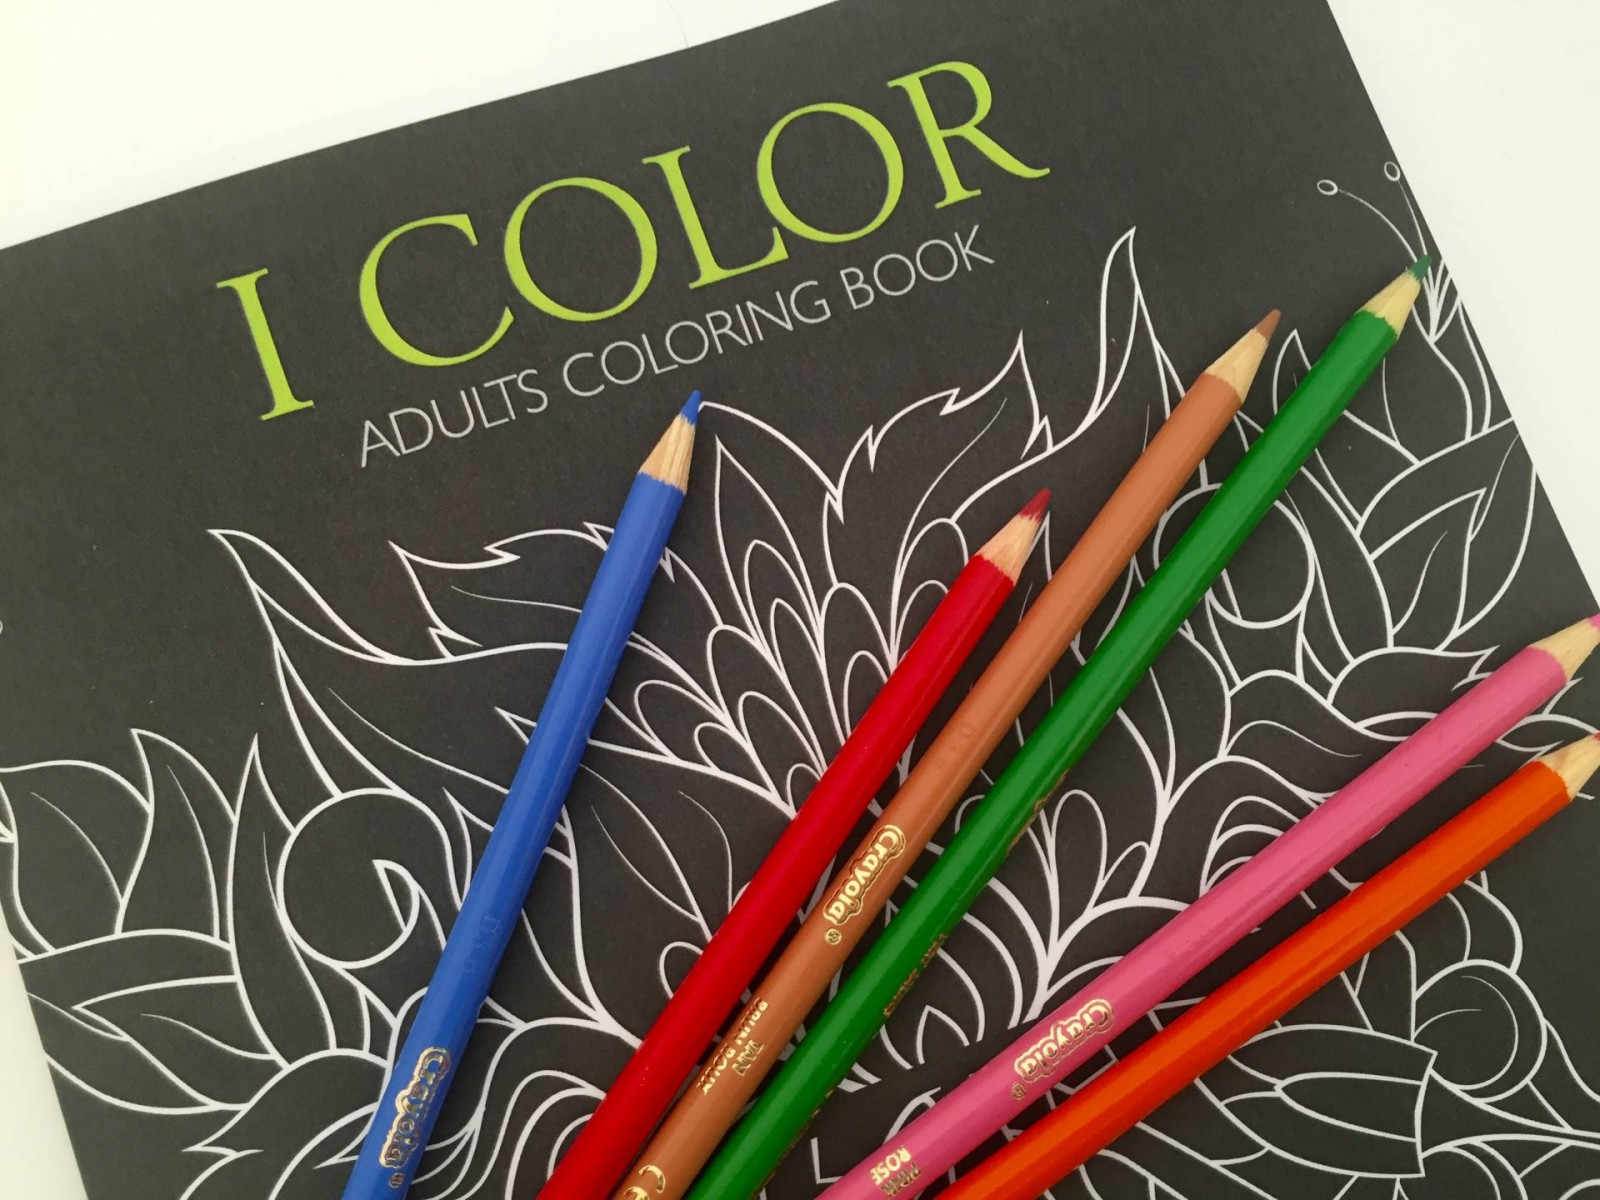 Relax with Adult Colouring